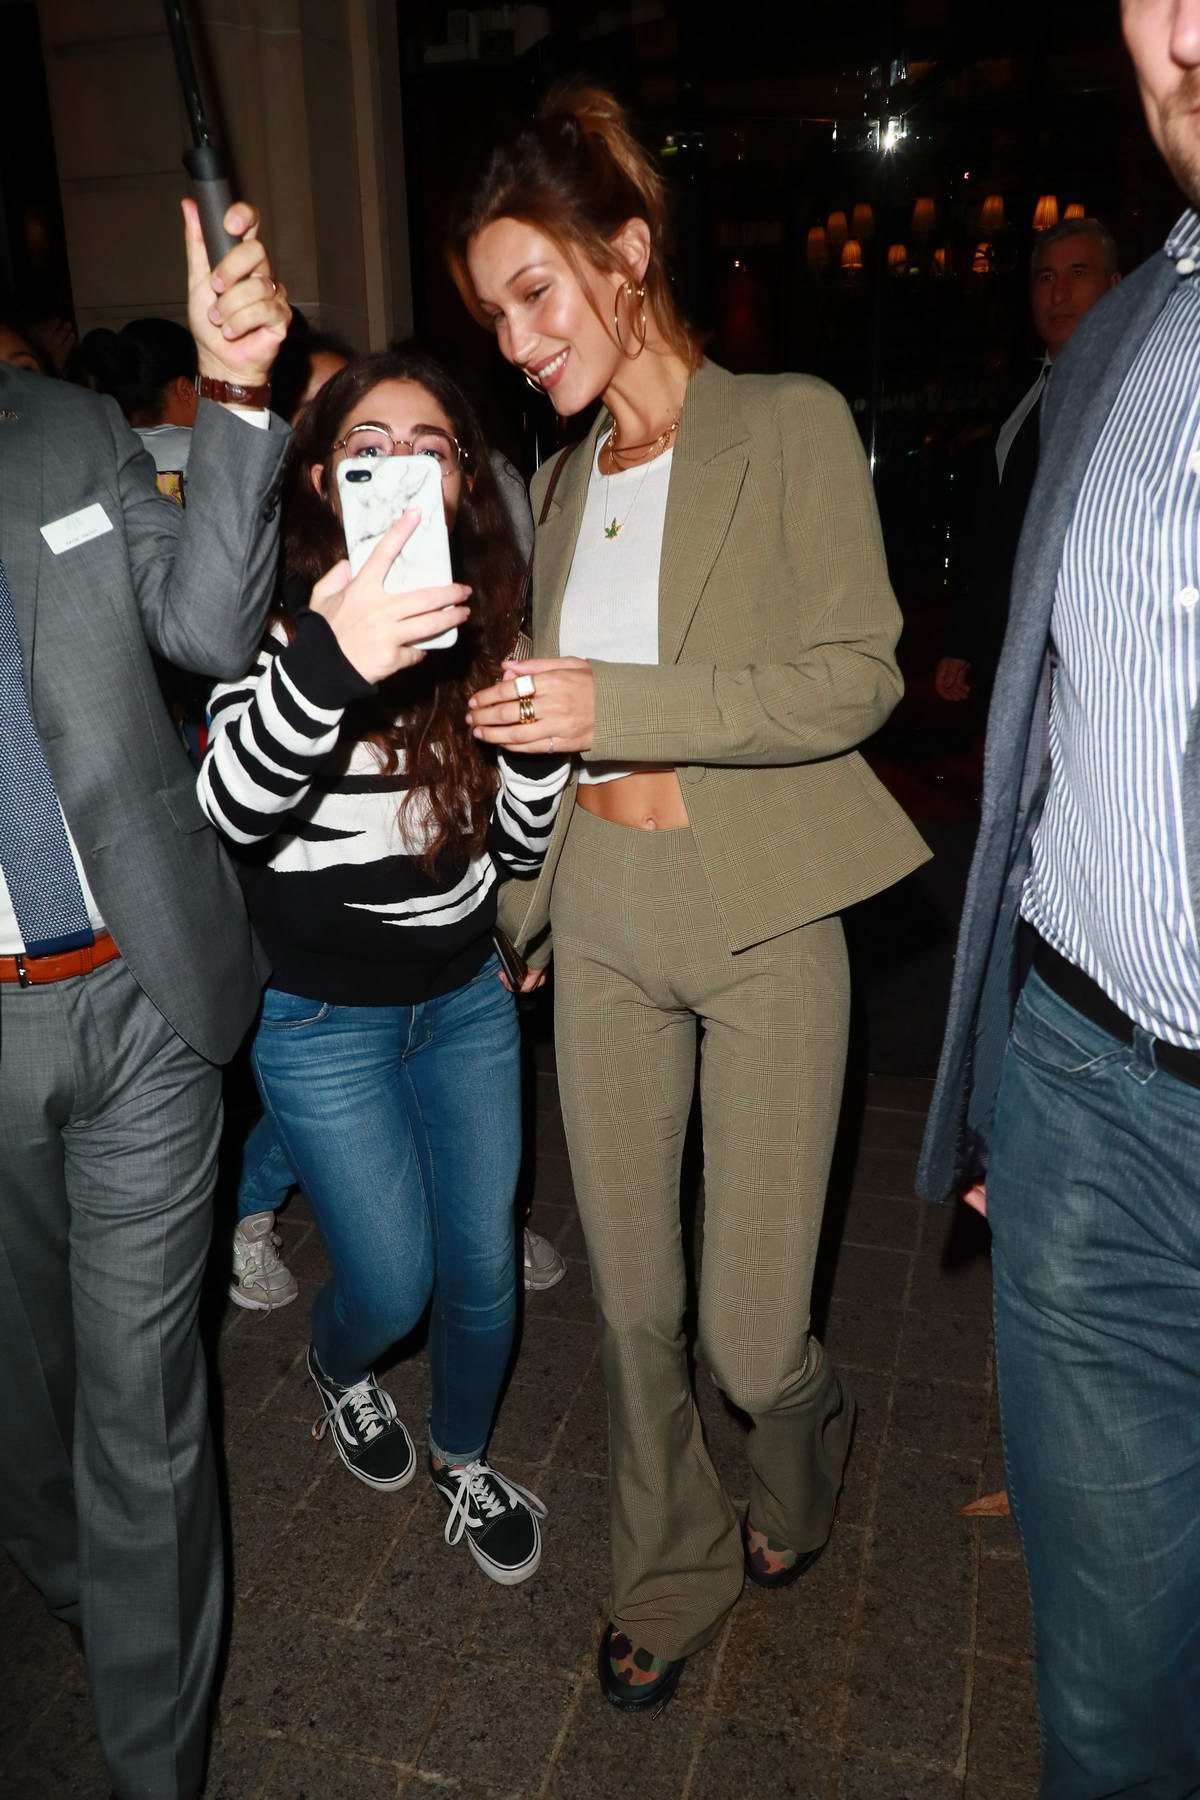 Bella Hadid greets fans as she leaves Royal Monceau hotel during PFW in Paris, France